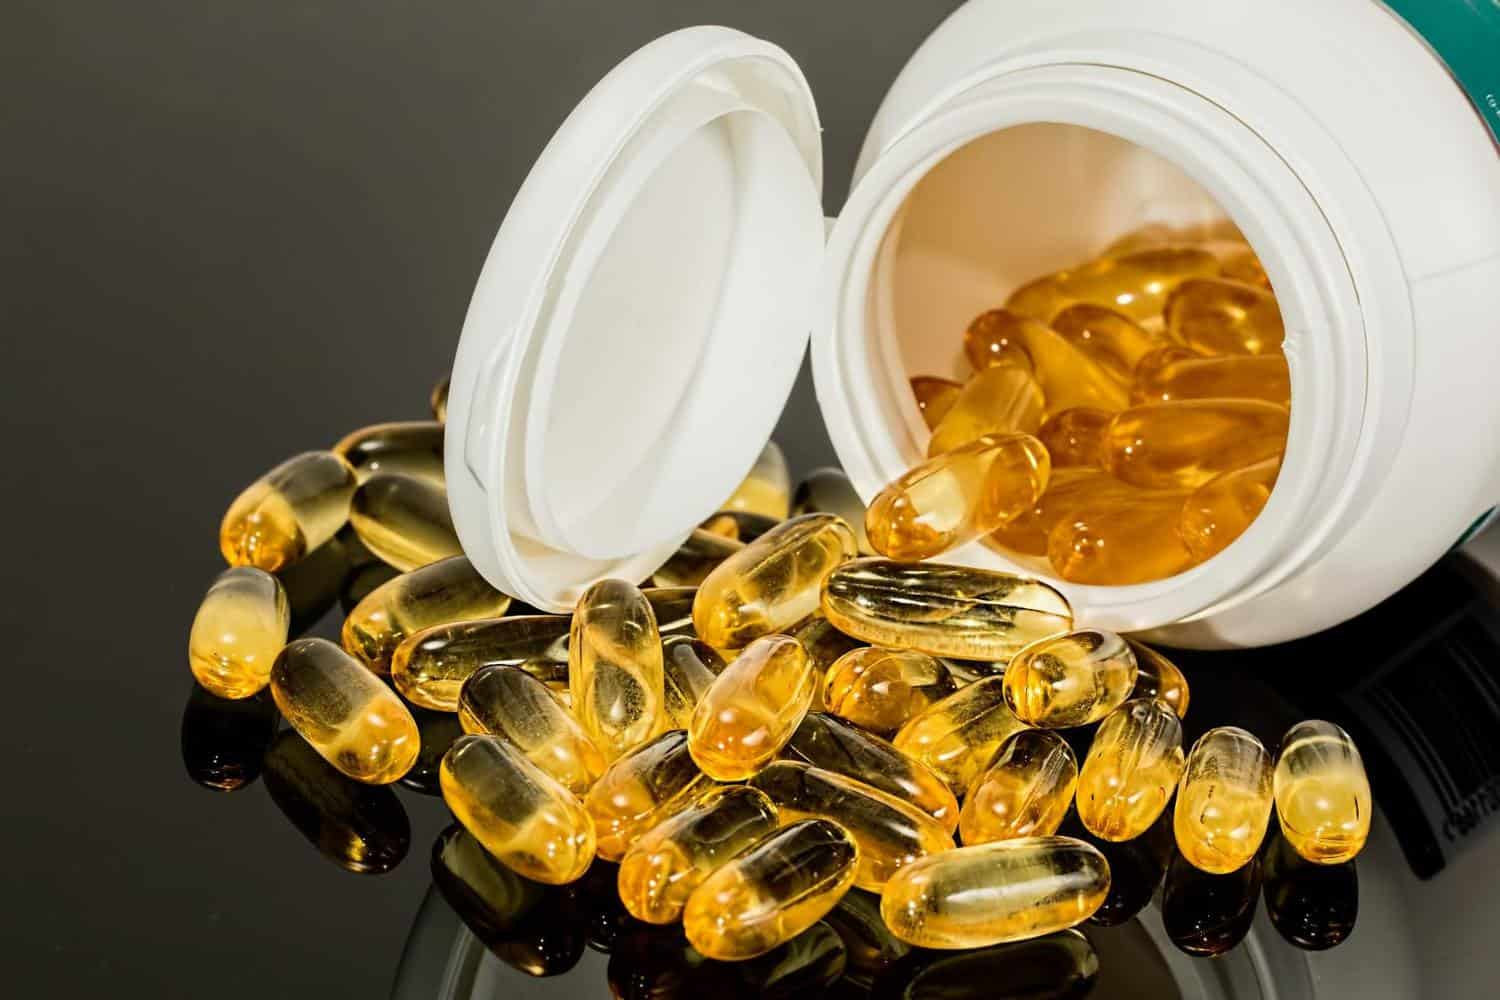 Fish oil capsules from a bottle.